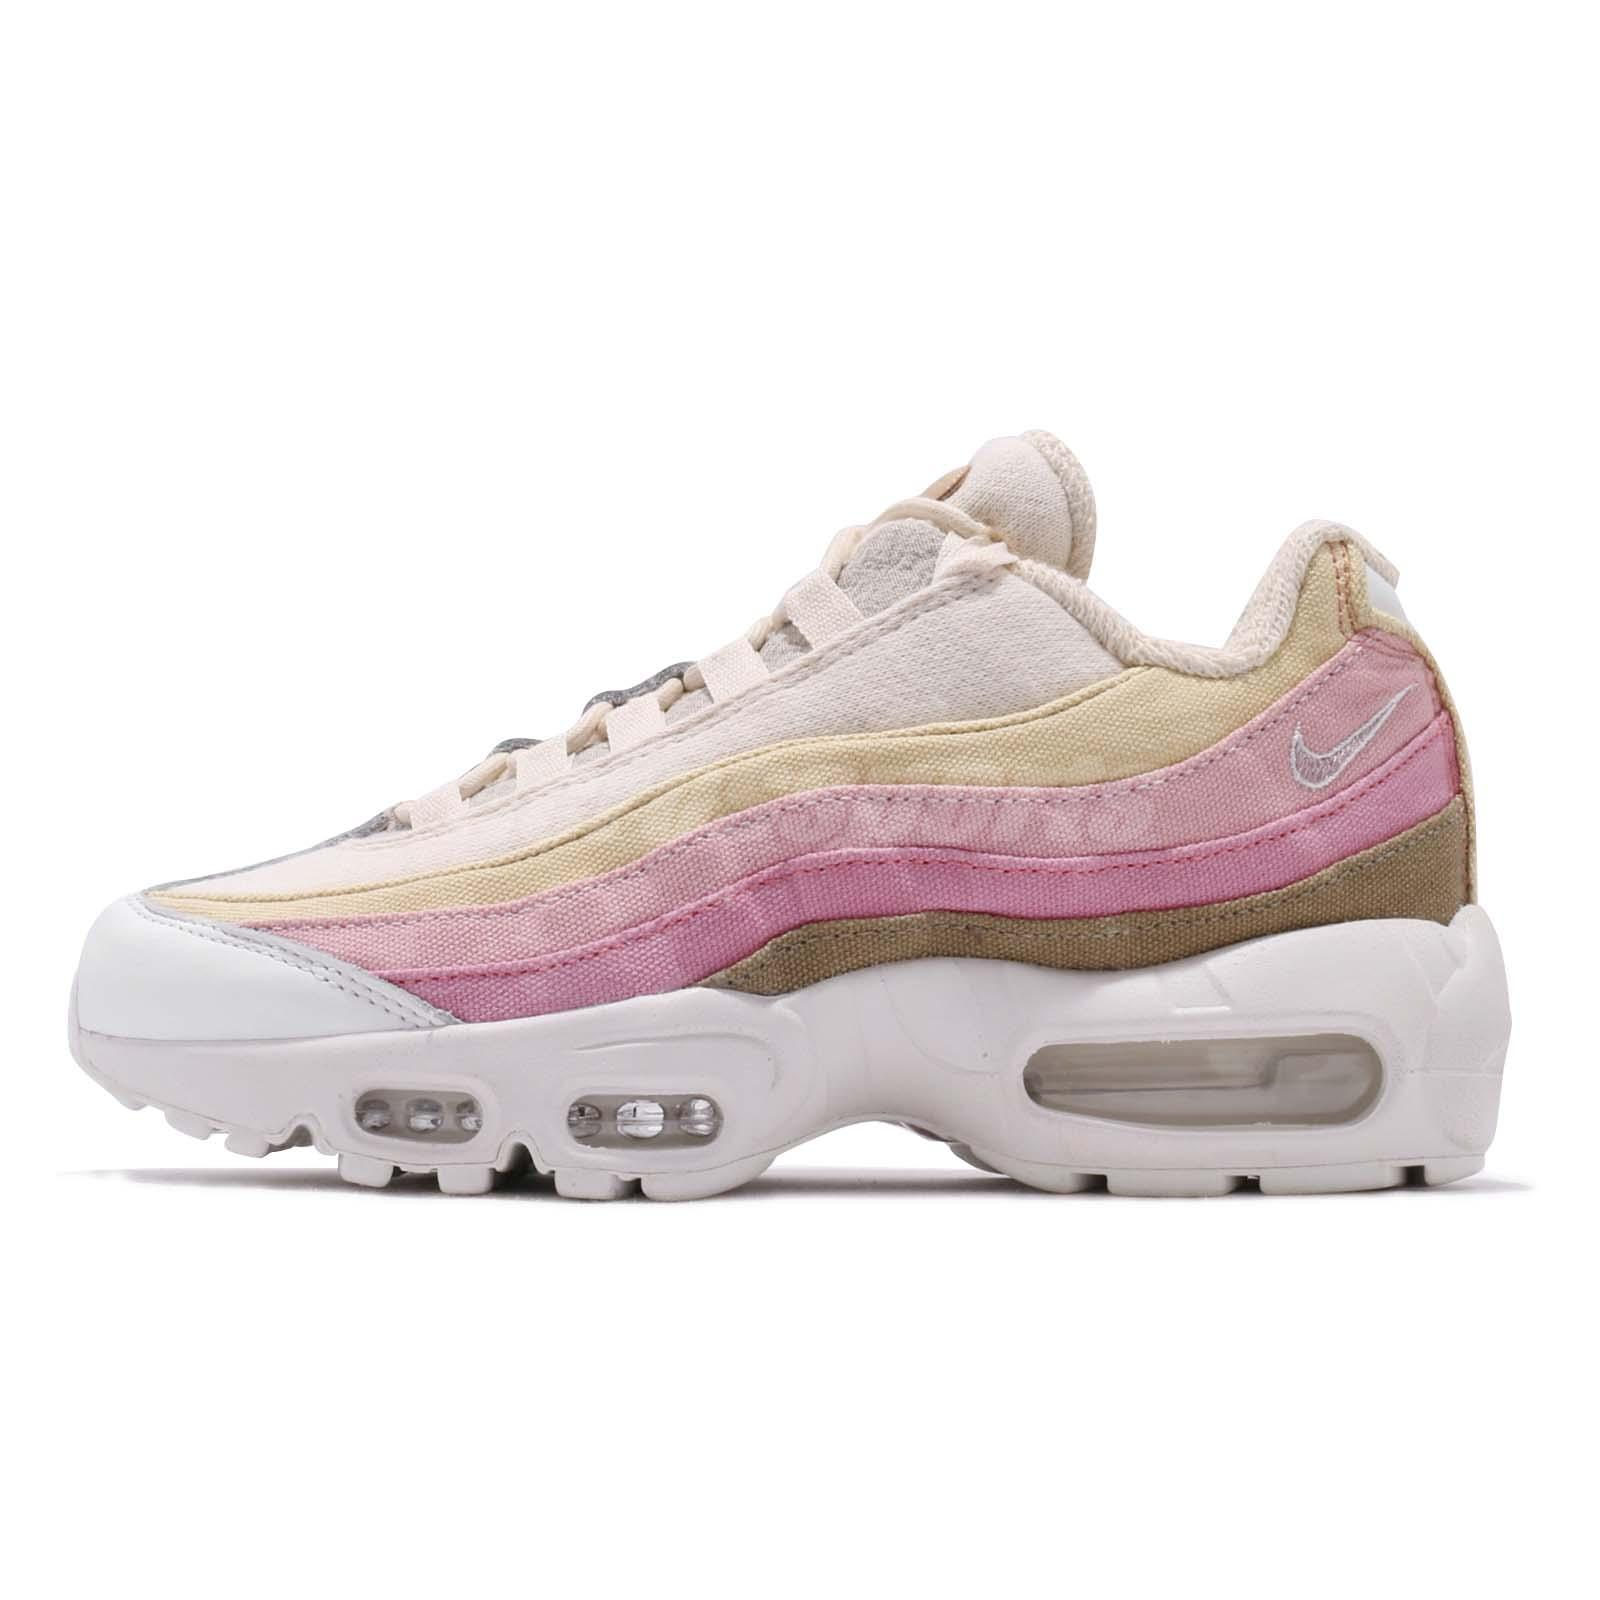 3b22eab874 Nike Wmns Air Max 95 QS Plant Color Pack Lemon Wash Pnk Women Shoes  CD7142-700